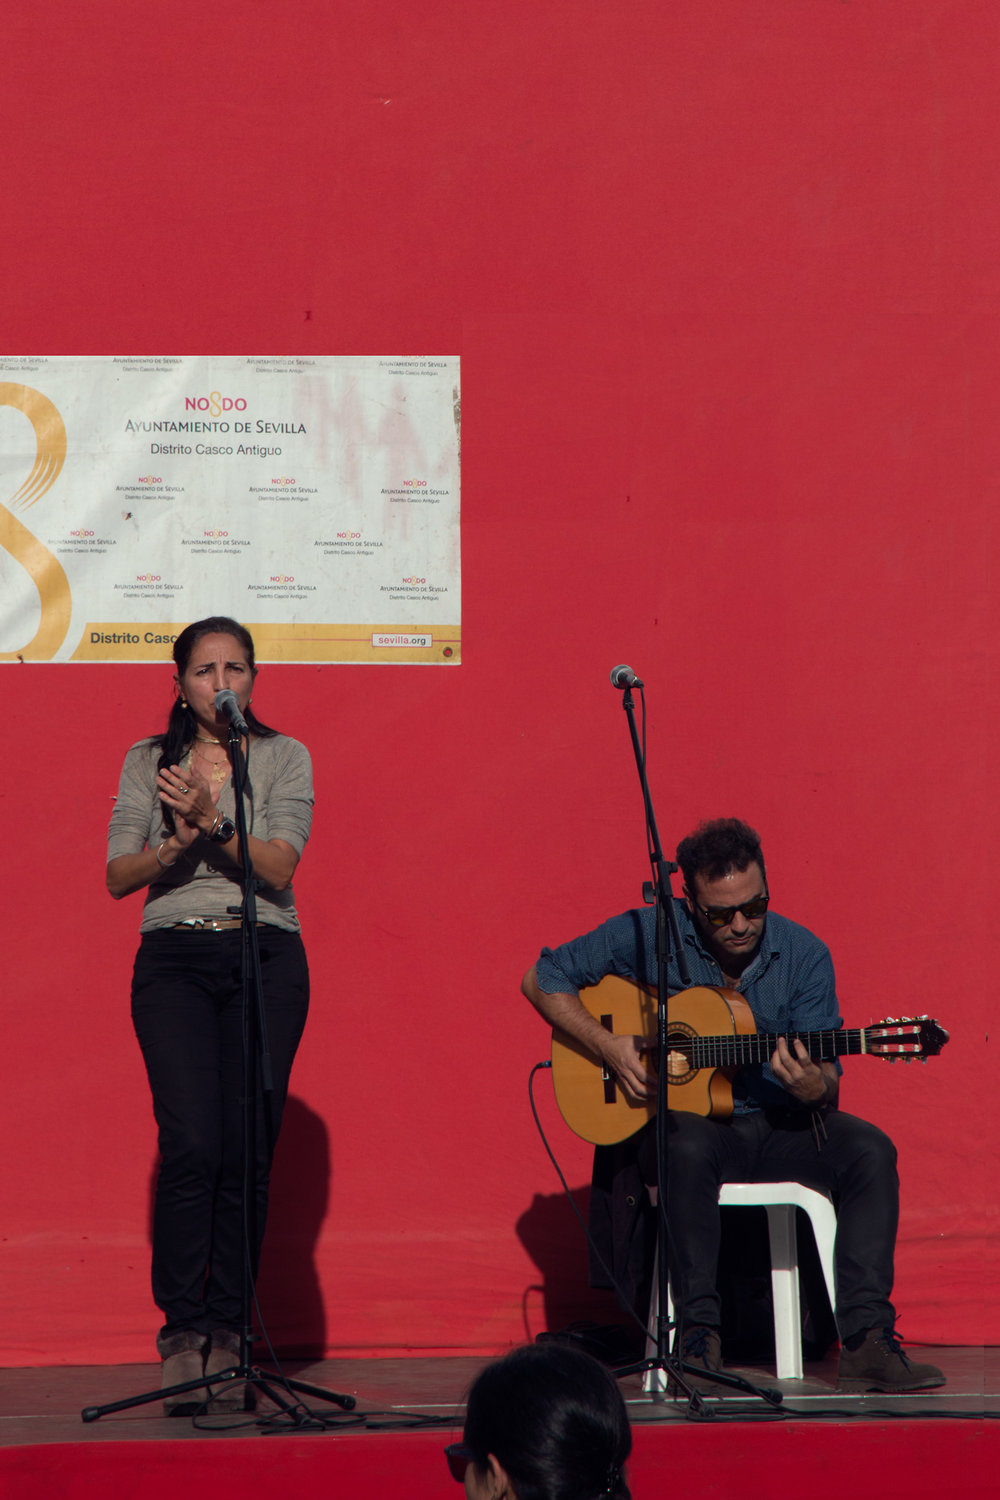 The local school was having a fundraiser. We think these were two of the teachers or parents! Great performance!